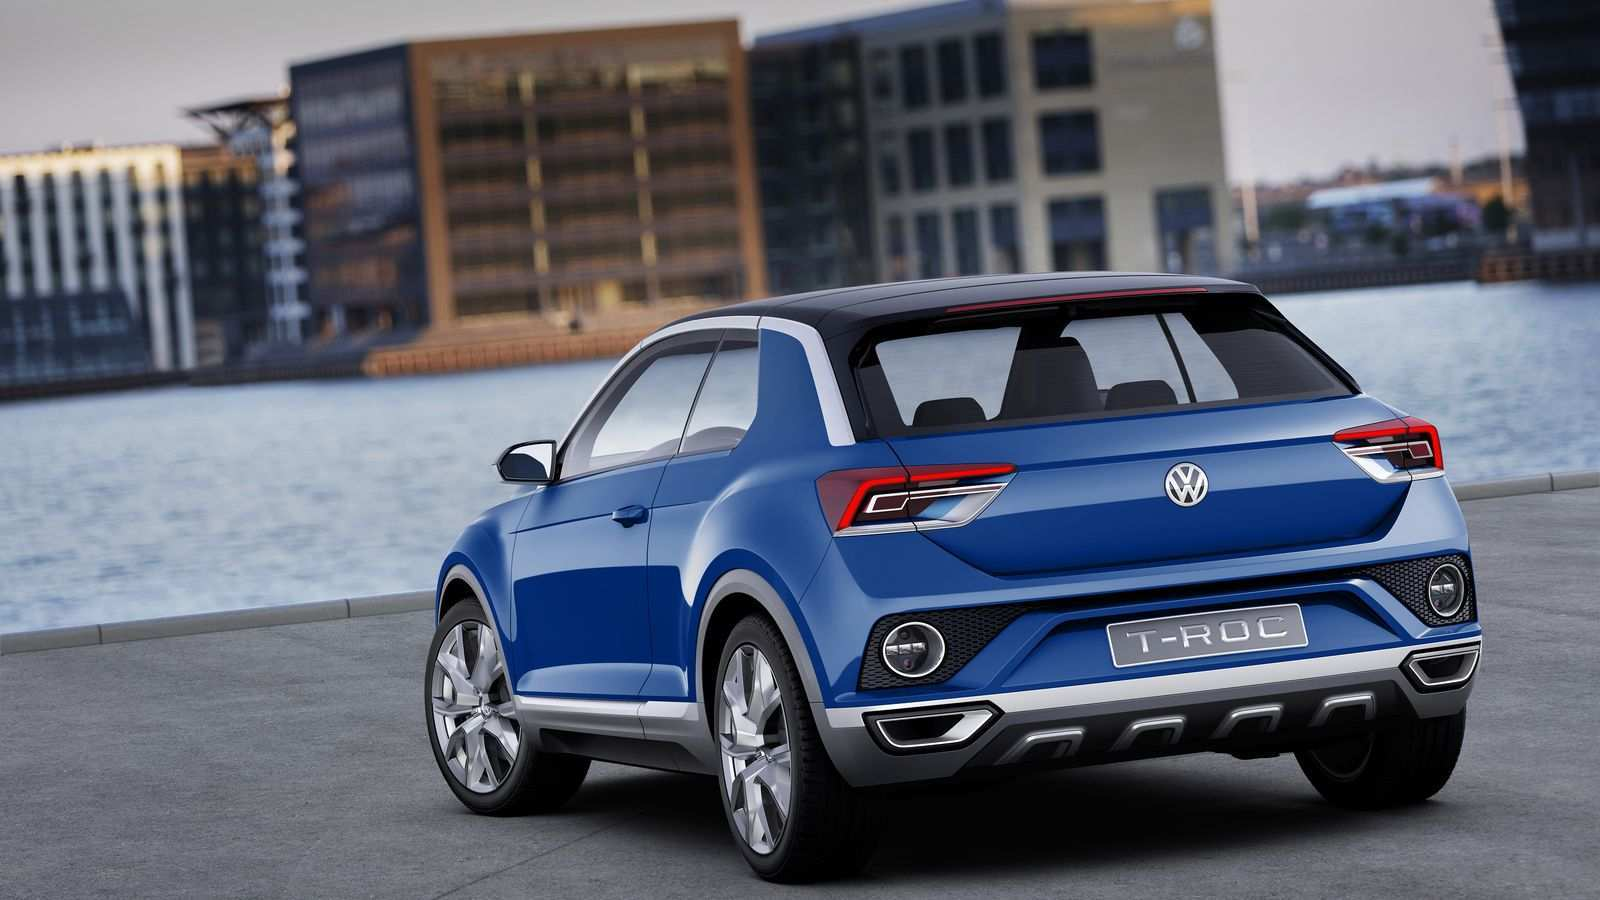 28 Great 2019 Volkswagen T Roc Prices for 2019 Volkswagen T Roc